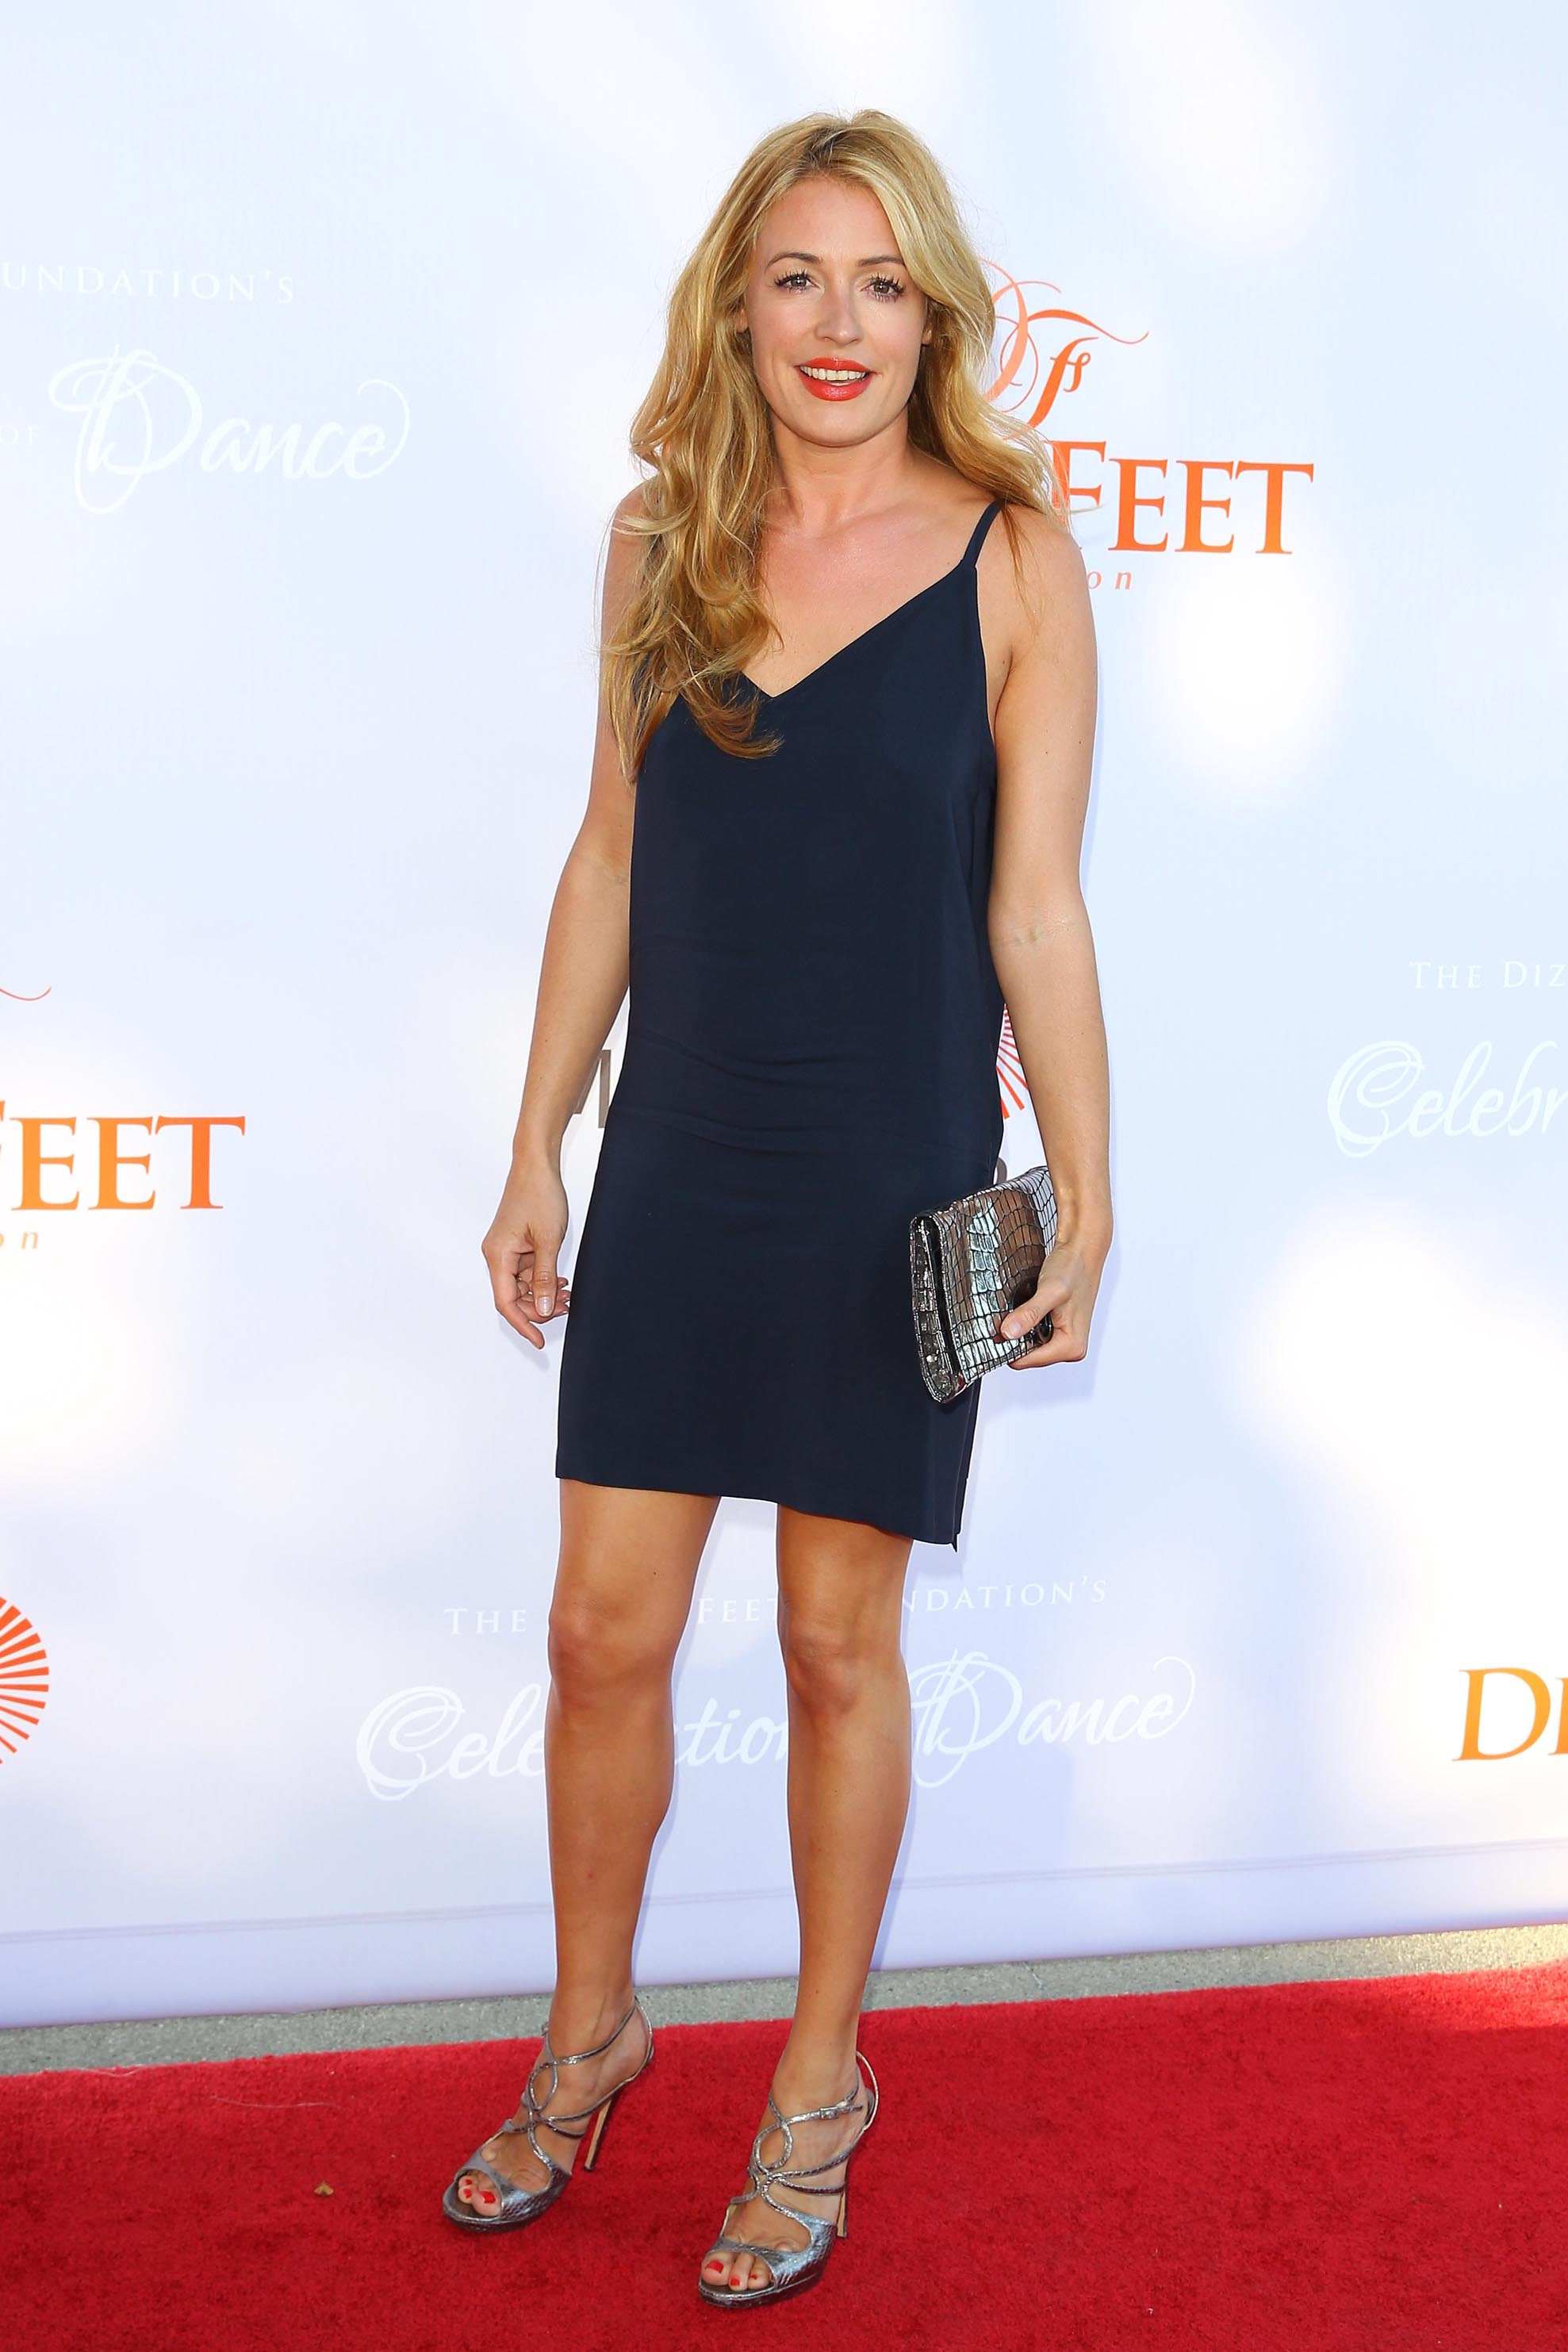 Cat Deeley Shows Off Her Sun-Kissed California Girl Style At Dance Gala